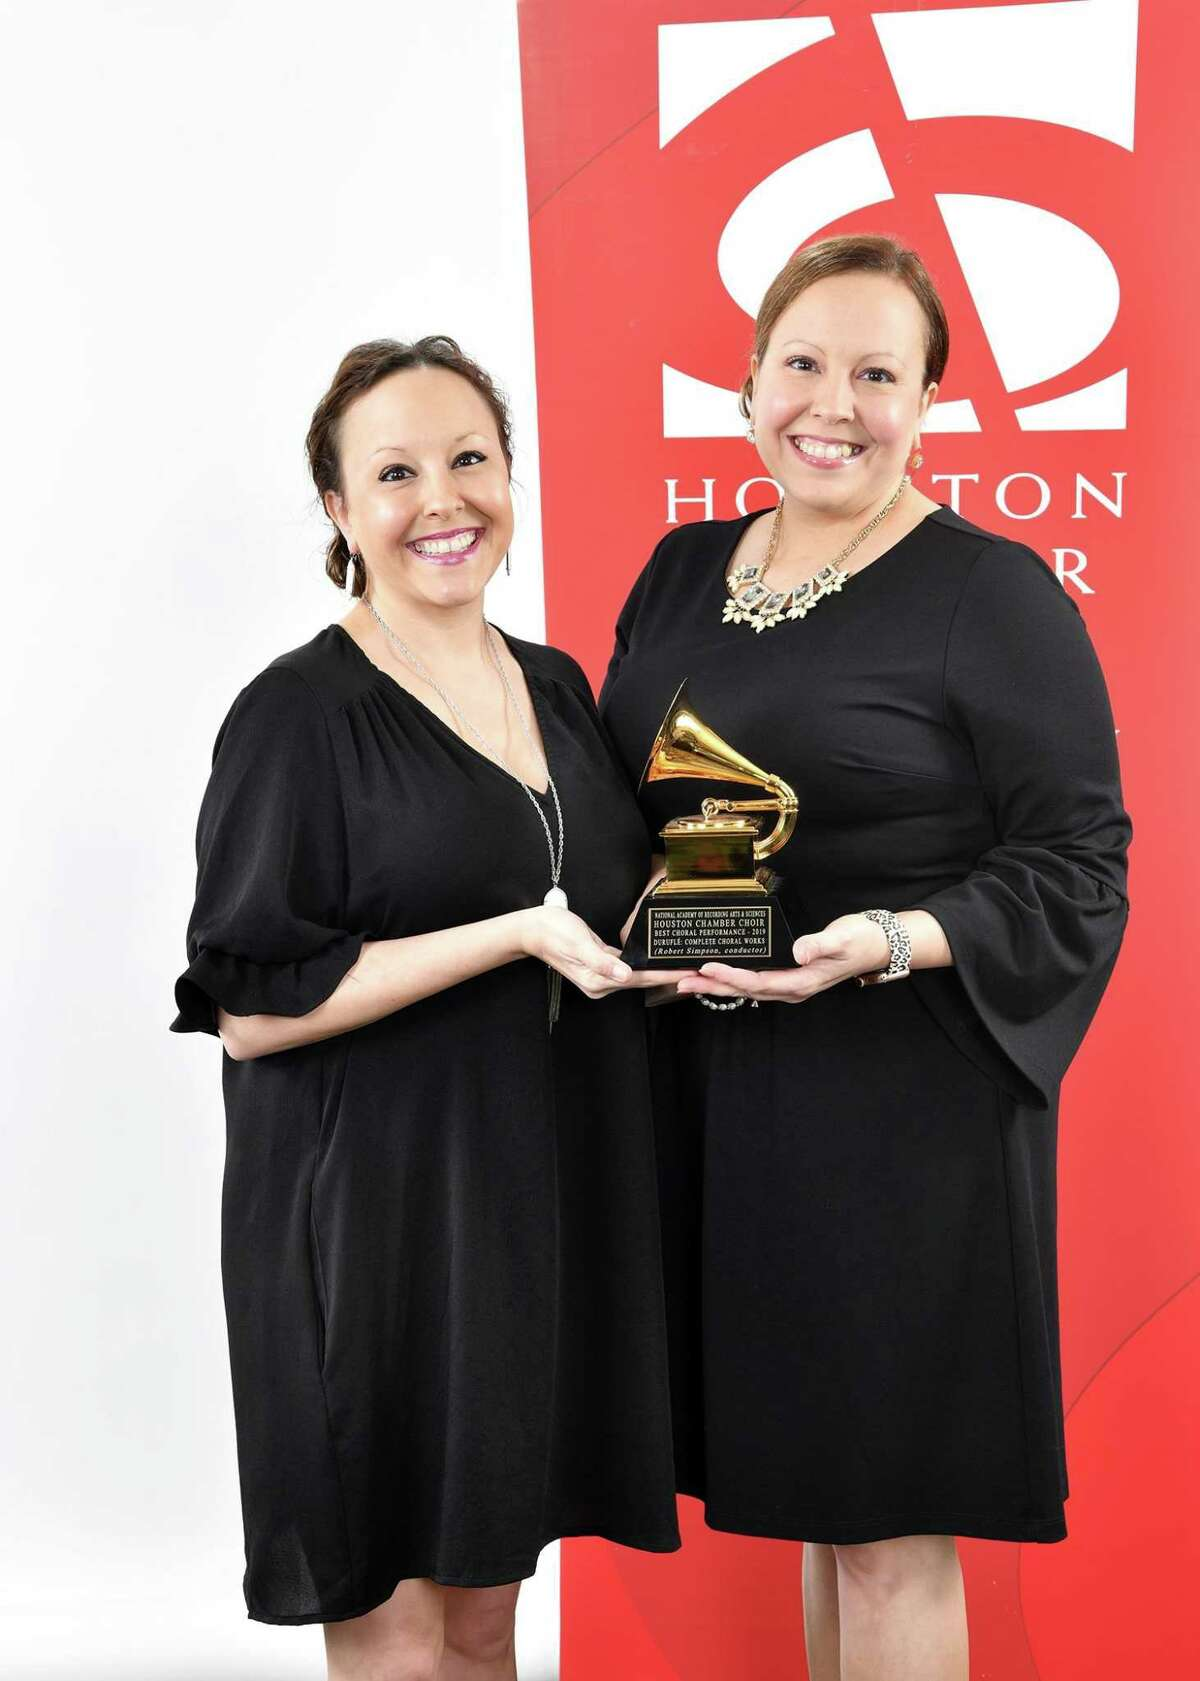 Kammi Estelle and her twin sister, Kelli Lawless (left), are both members of the Grammy award-winning Houston Chamber Choir. On Mar. 21, the Grammy award-winning Houston Chamber Choir presents A Time to Journey Inward, the fourth offering of the 2020-2021 virtual season, To Everything a Season.